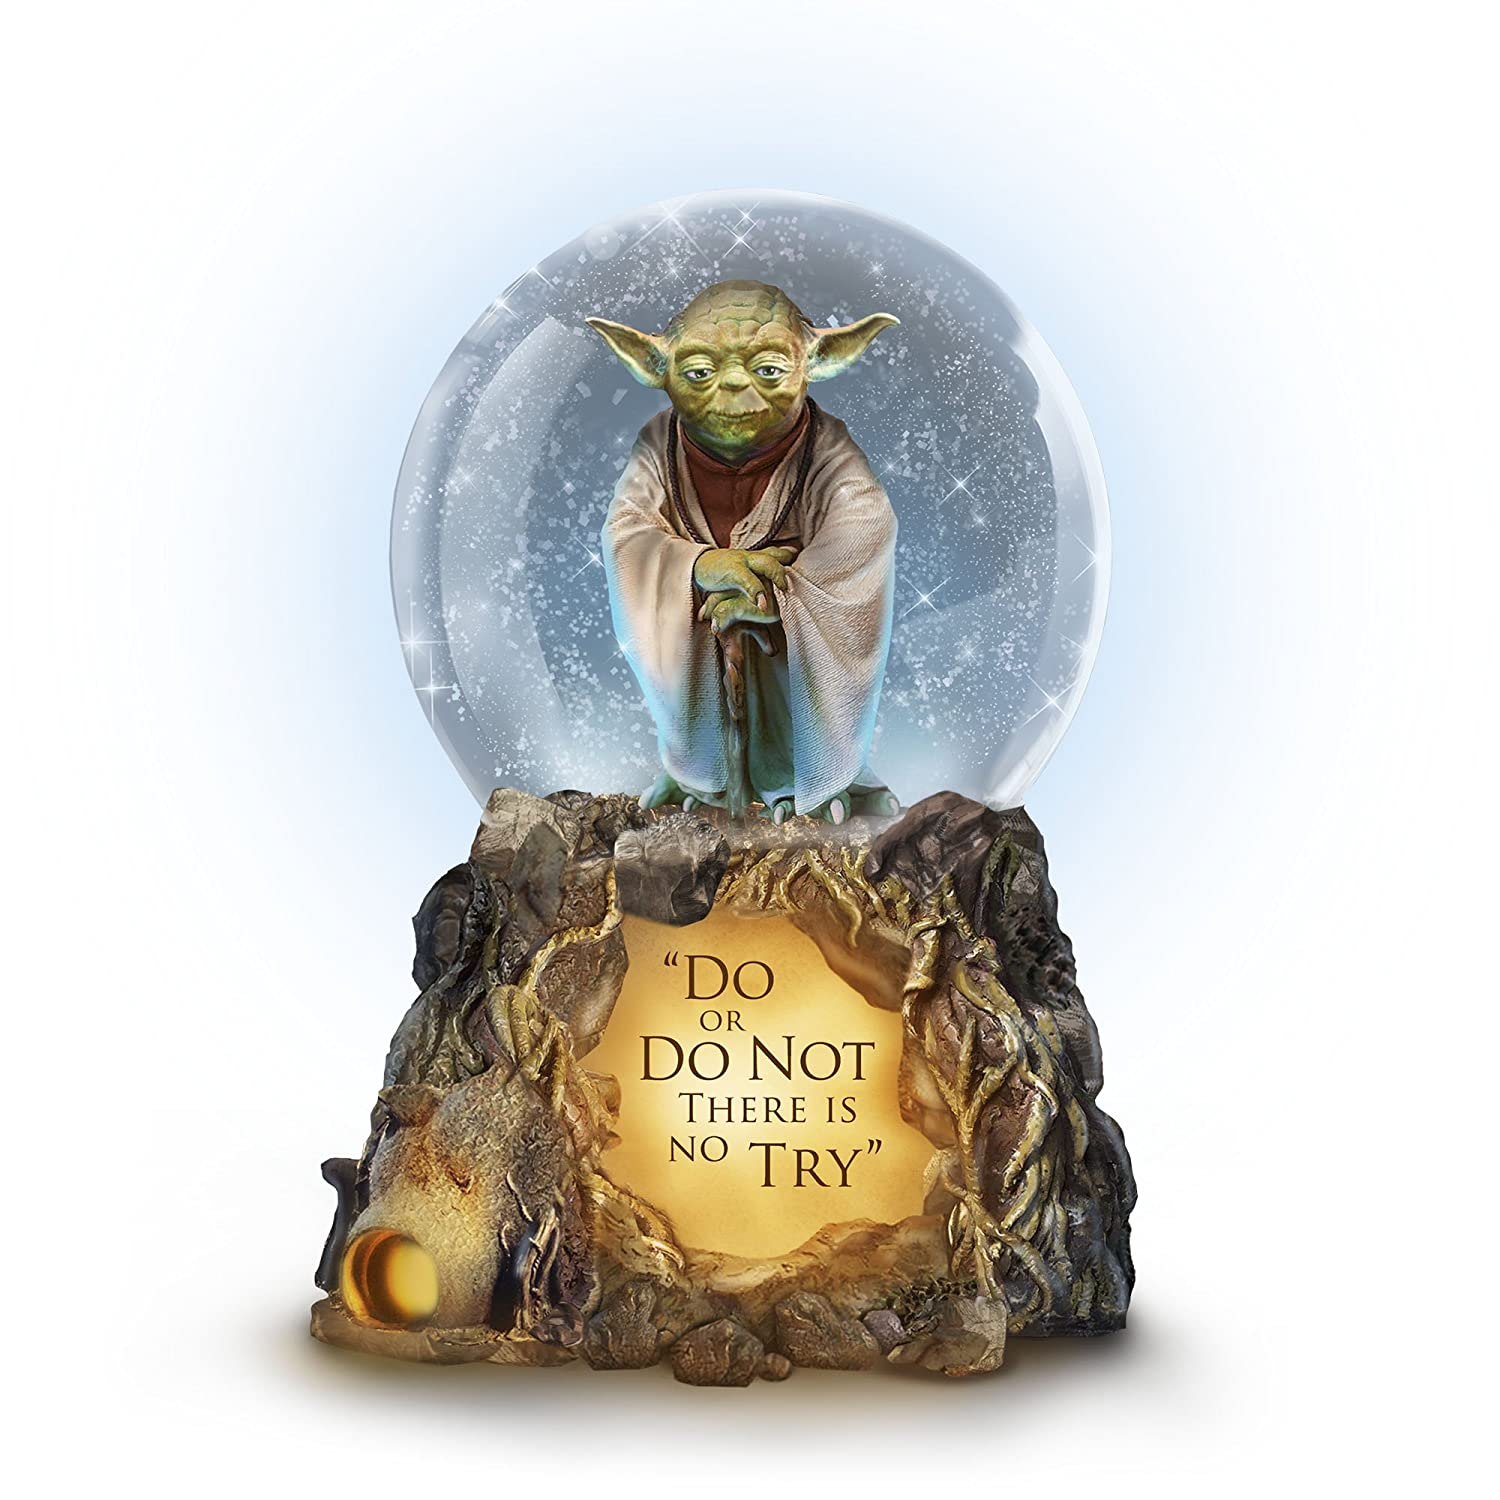 The Bradford Exchange Star Wars™ Jedi Master Yoda™ Lit Musical Glitter Globe – Officially licensed Star Wars™ globe, Sculptural Yoda and base with illumination, music and glitter.